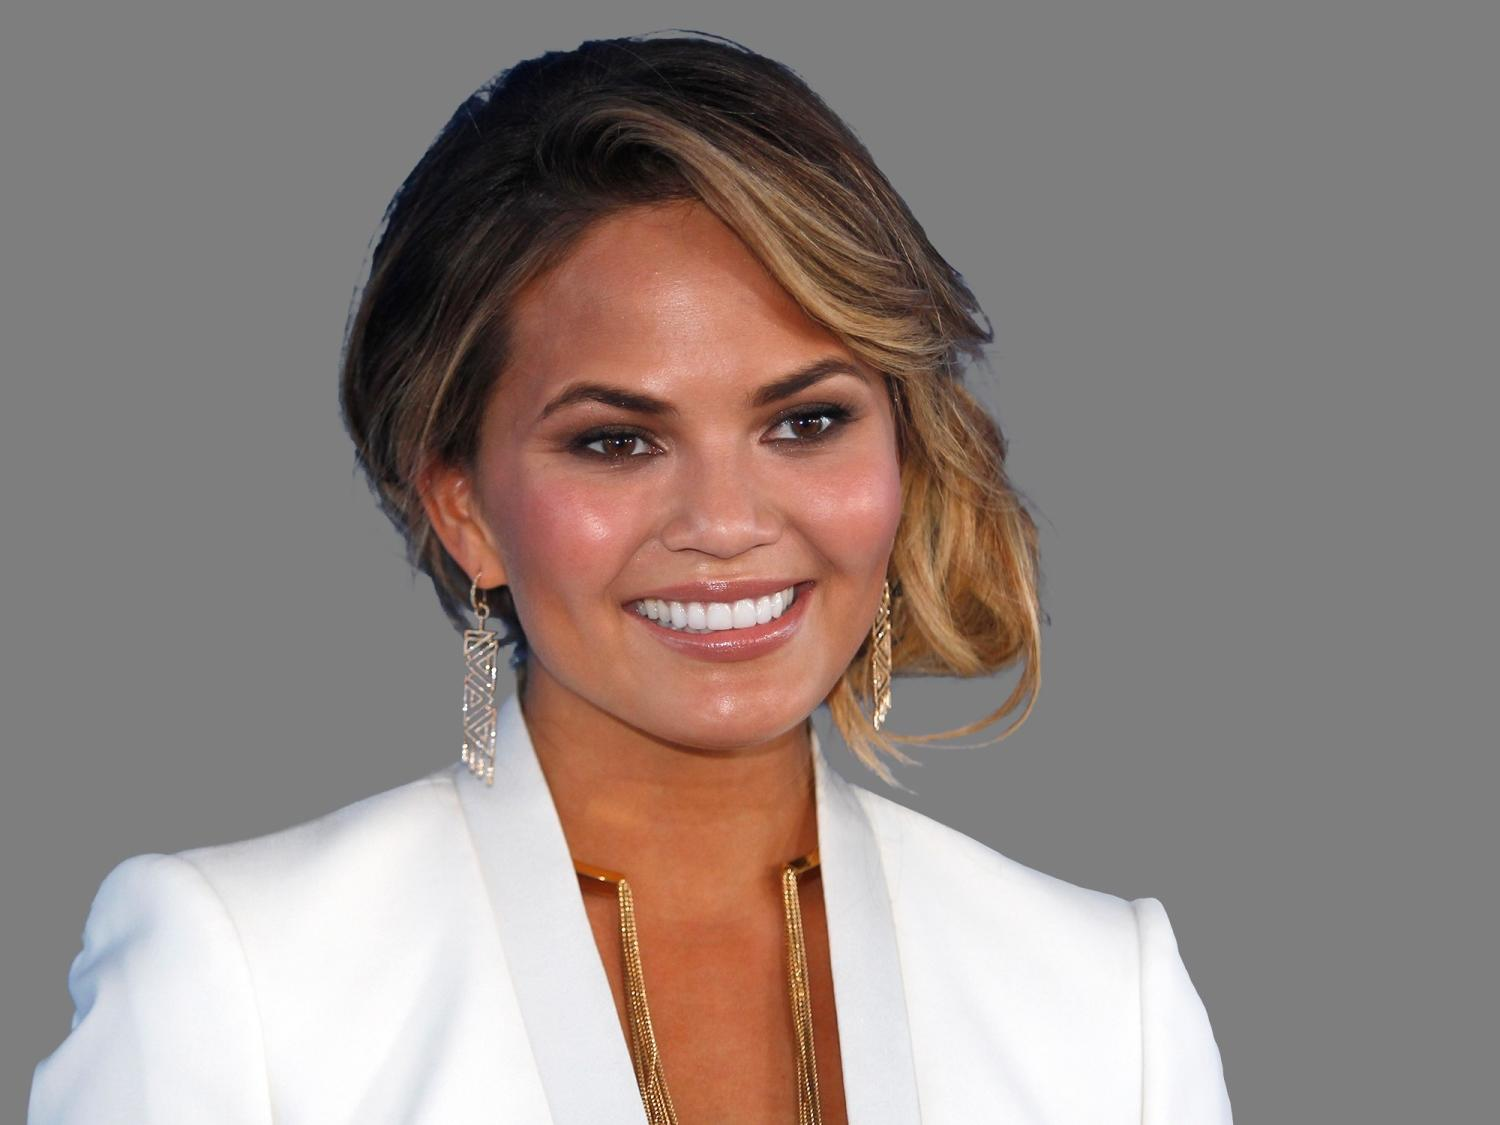 Chrissy Teigen says sorry after 'tone deaf and icky' tweet sparks anger